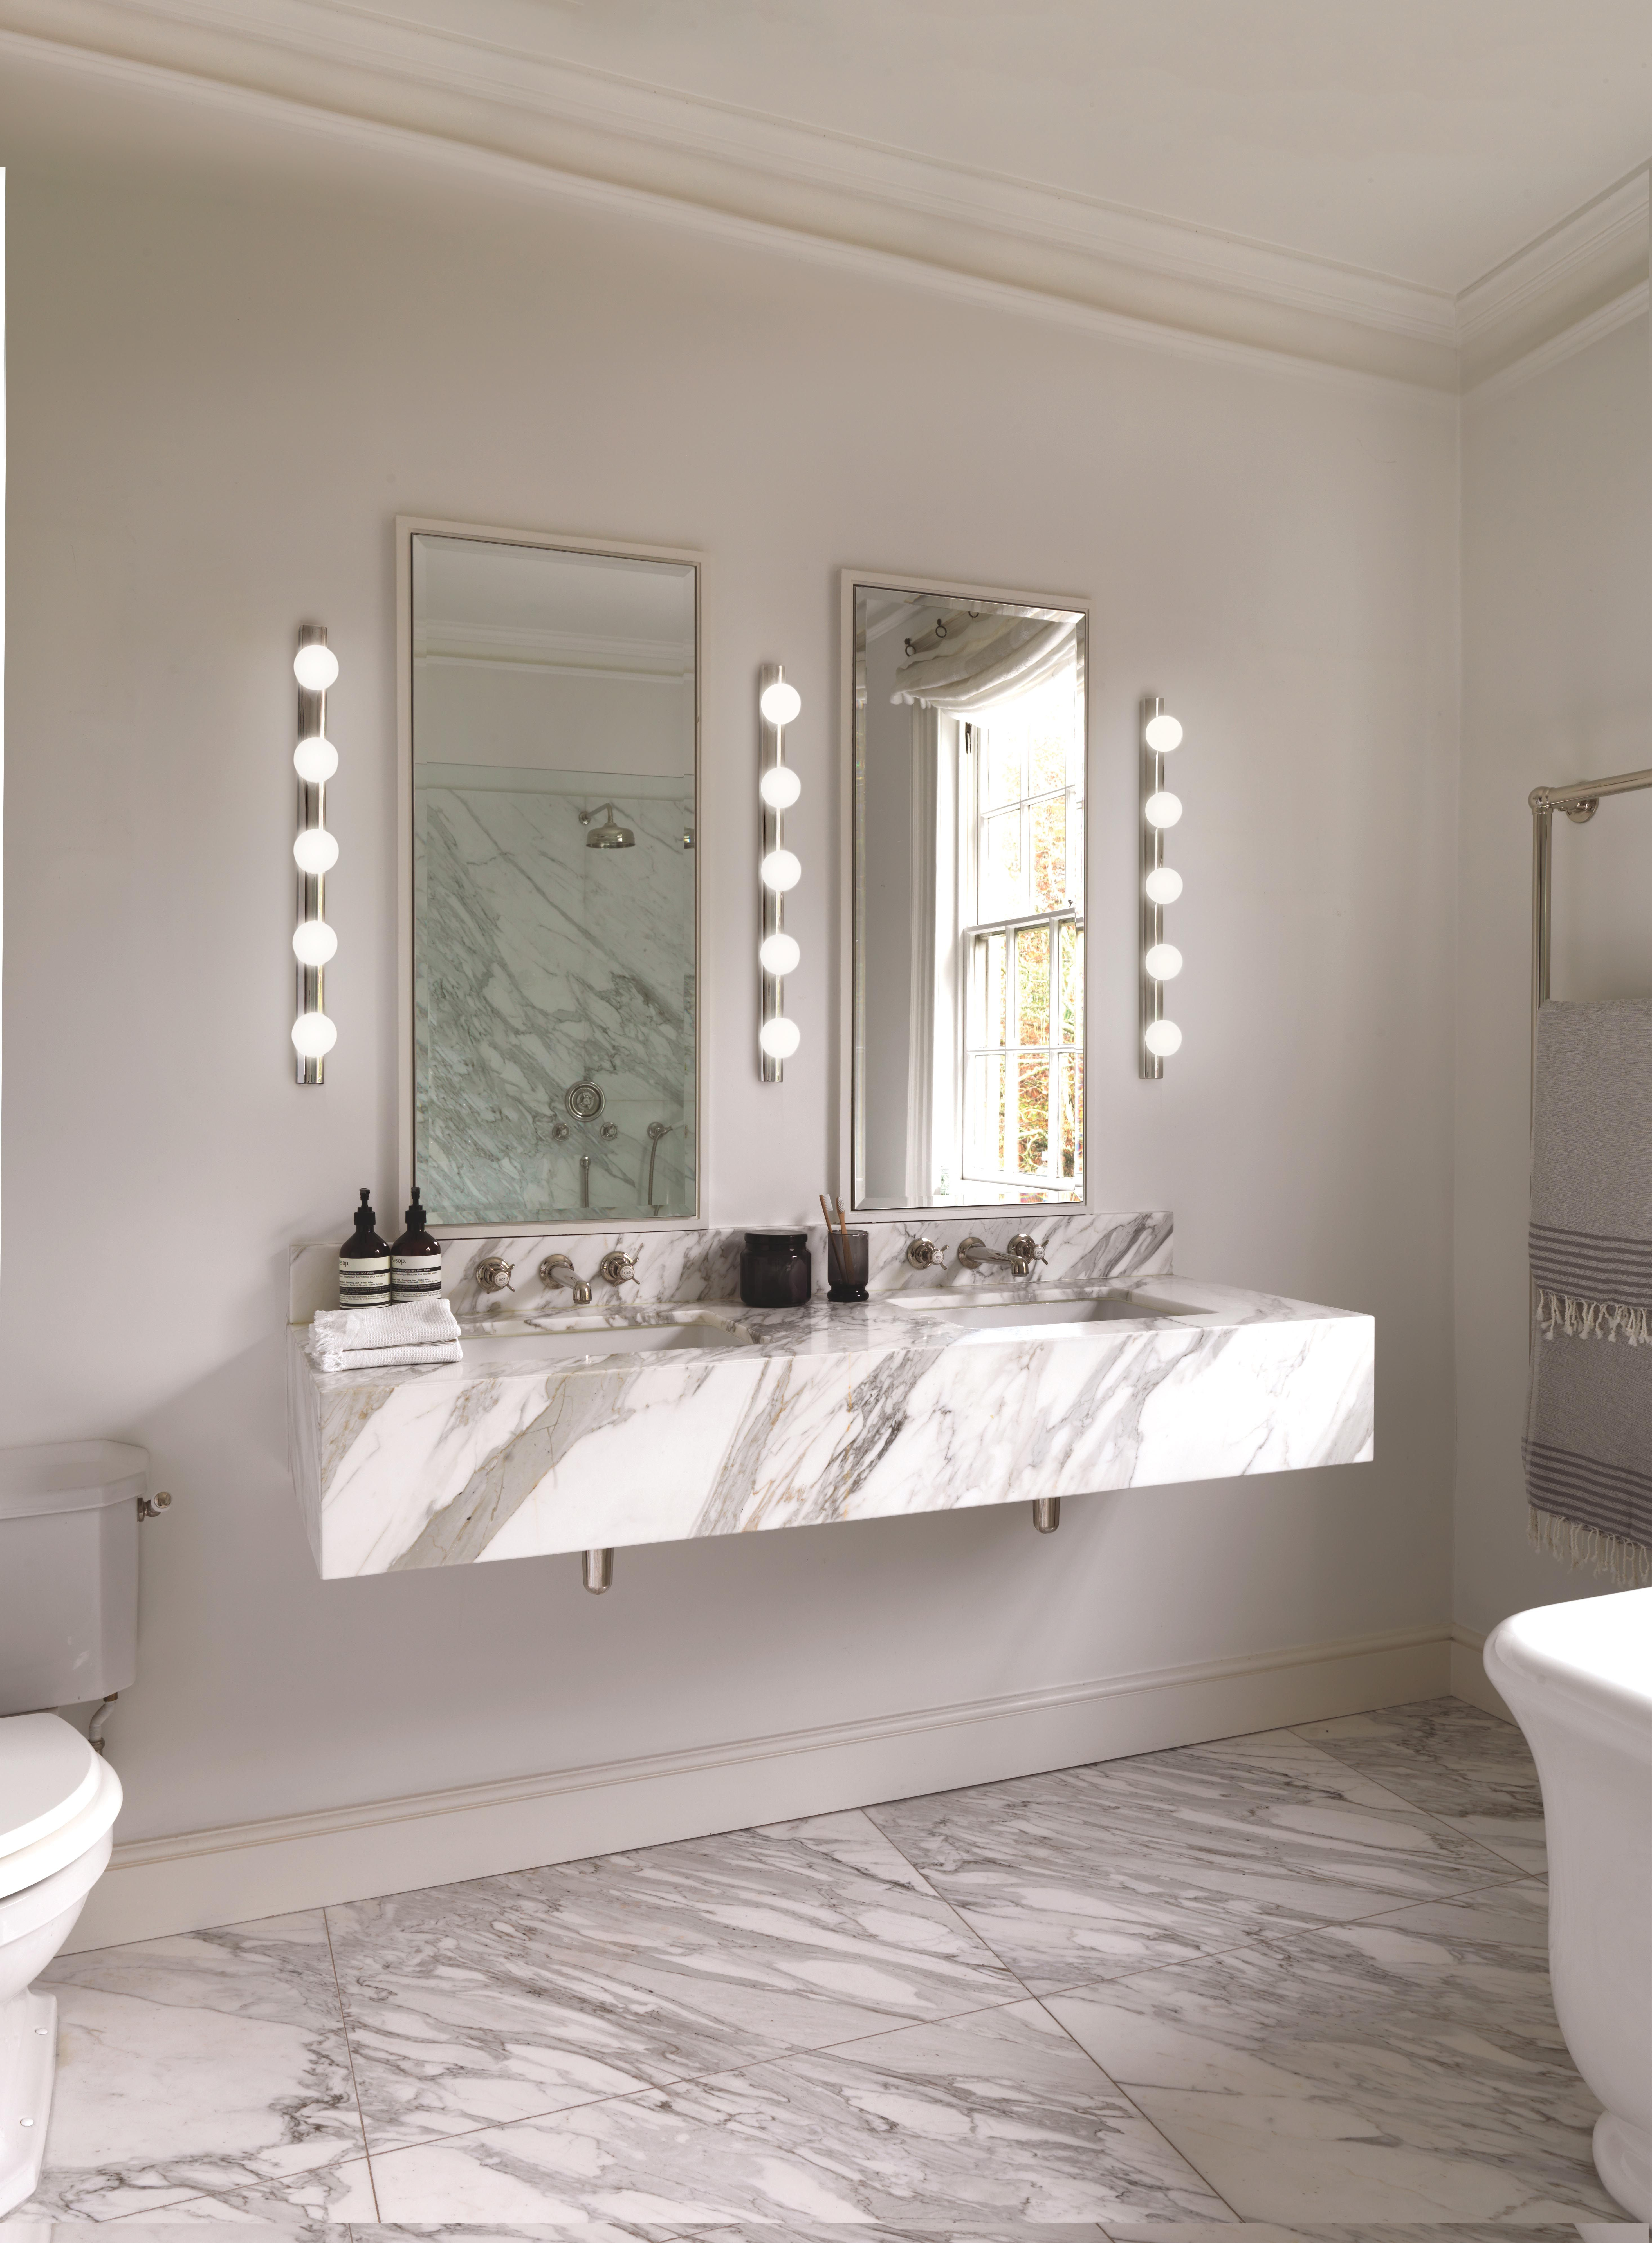 The Cabaret Bathroom Wall Light By Astro Lighting In 2019